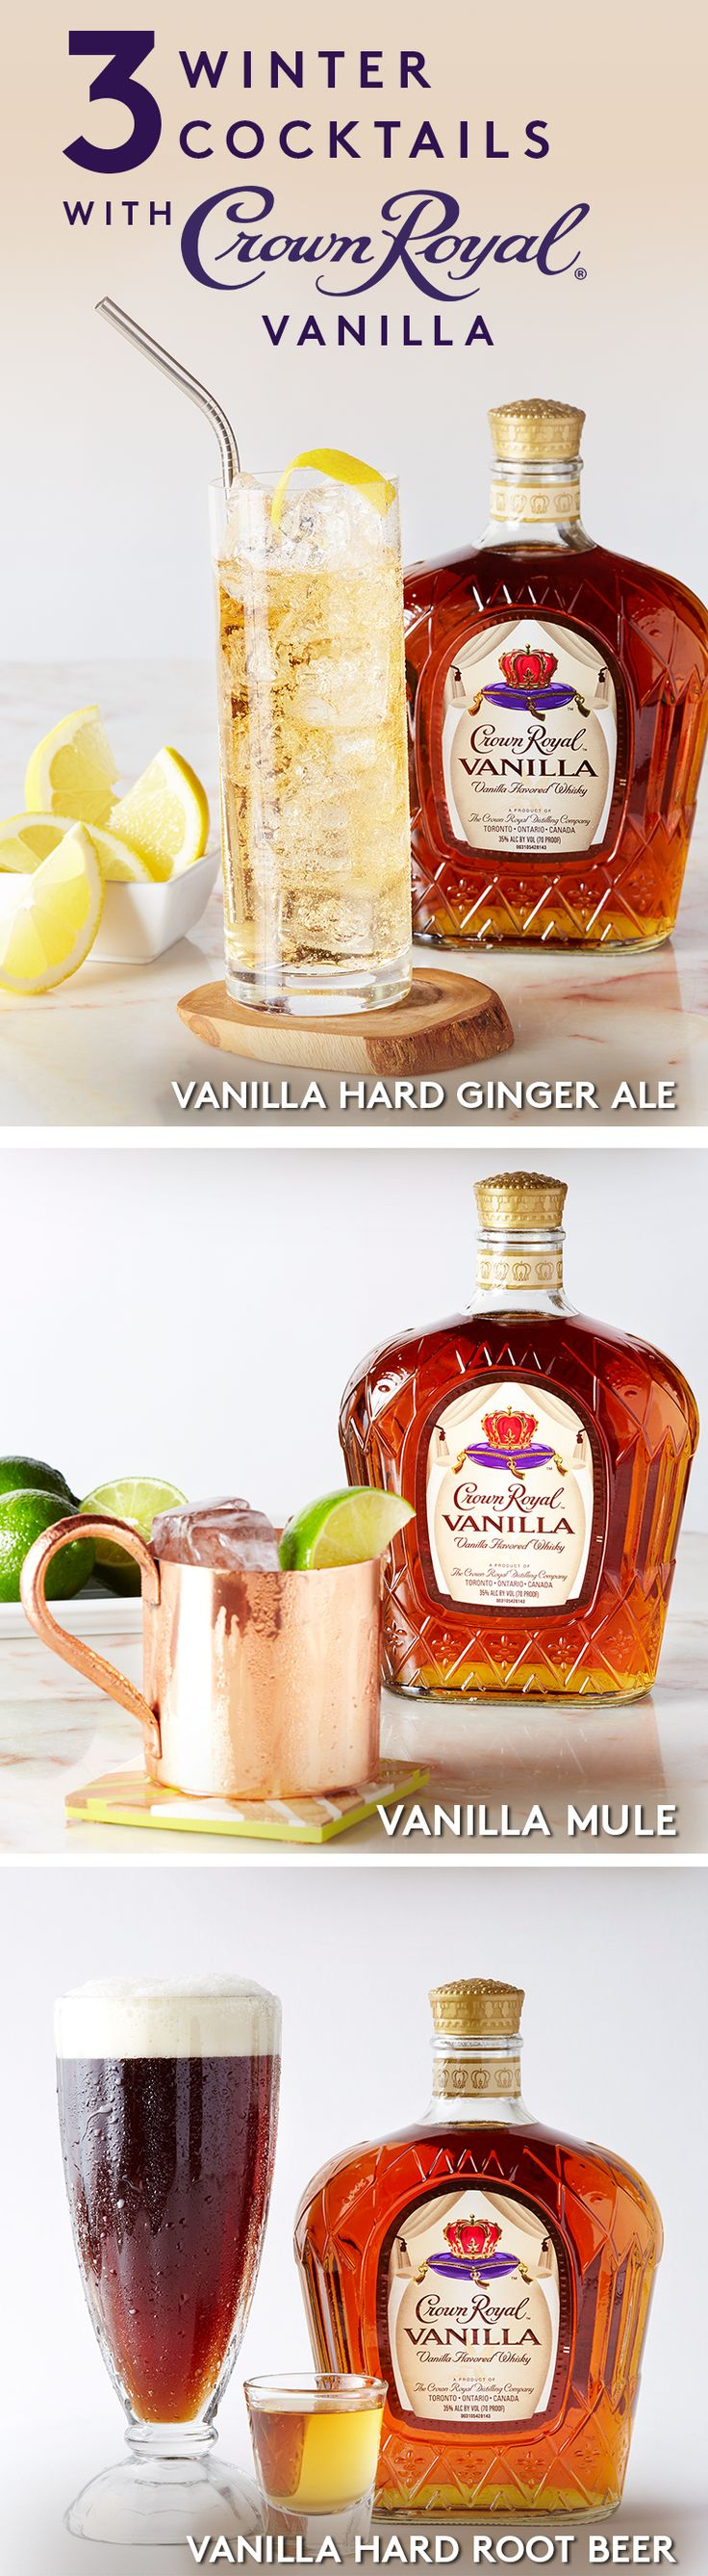 For a simple cocktail recipe, fix a Vanilla Hard Ginger Ale. Add 1.5 oz Crown Royal Vanilla to an ice-filled highball glass. Add 4 oz ginger ale and stir. For a twist on a mule, combine 1.5 oz of Crown Royal Vanilla, .75 oz lime juice and ice into a shaker - shake and strain. Top with ginger beer, 2 dashes of bitters and garnish with a lime. For an easy & classic cocktail, try the Vanilla Hard Root Beer. Add 1.5 oz Crown Royal Vanilla Whisky to an ice-filled glass, top with root beer and…